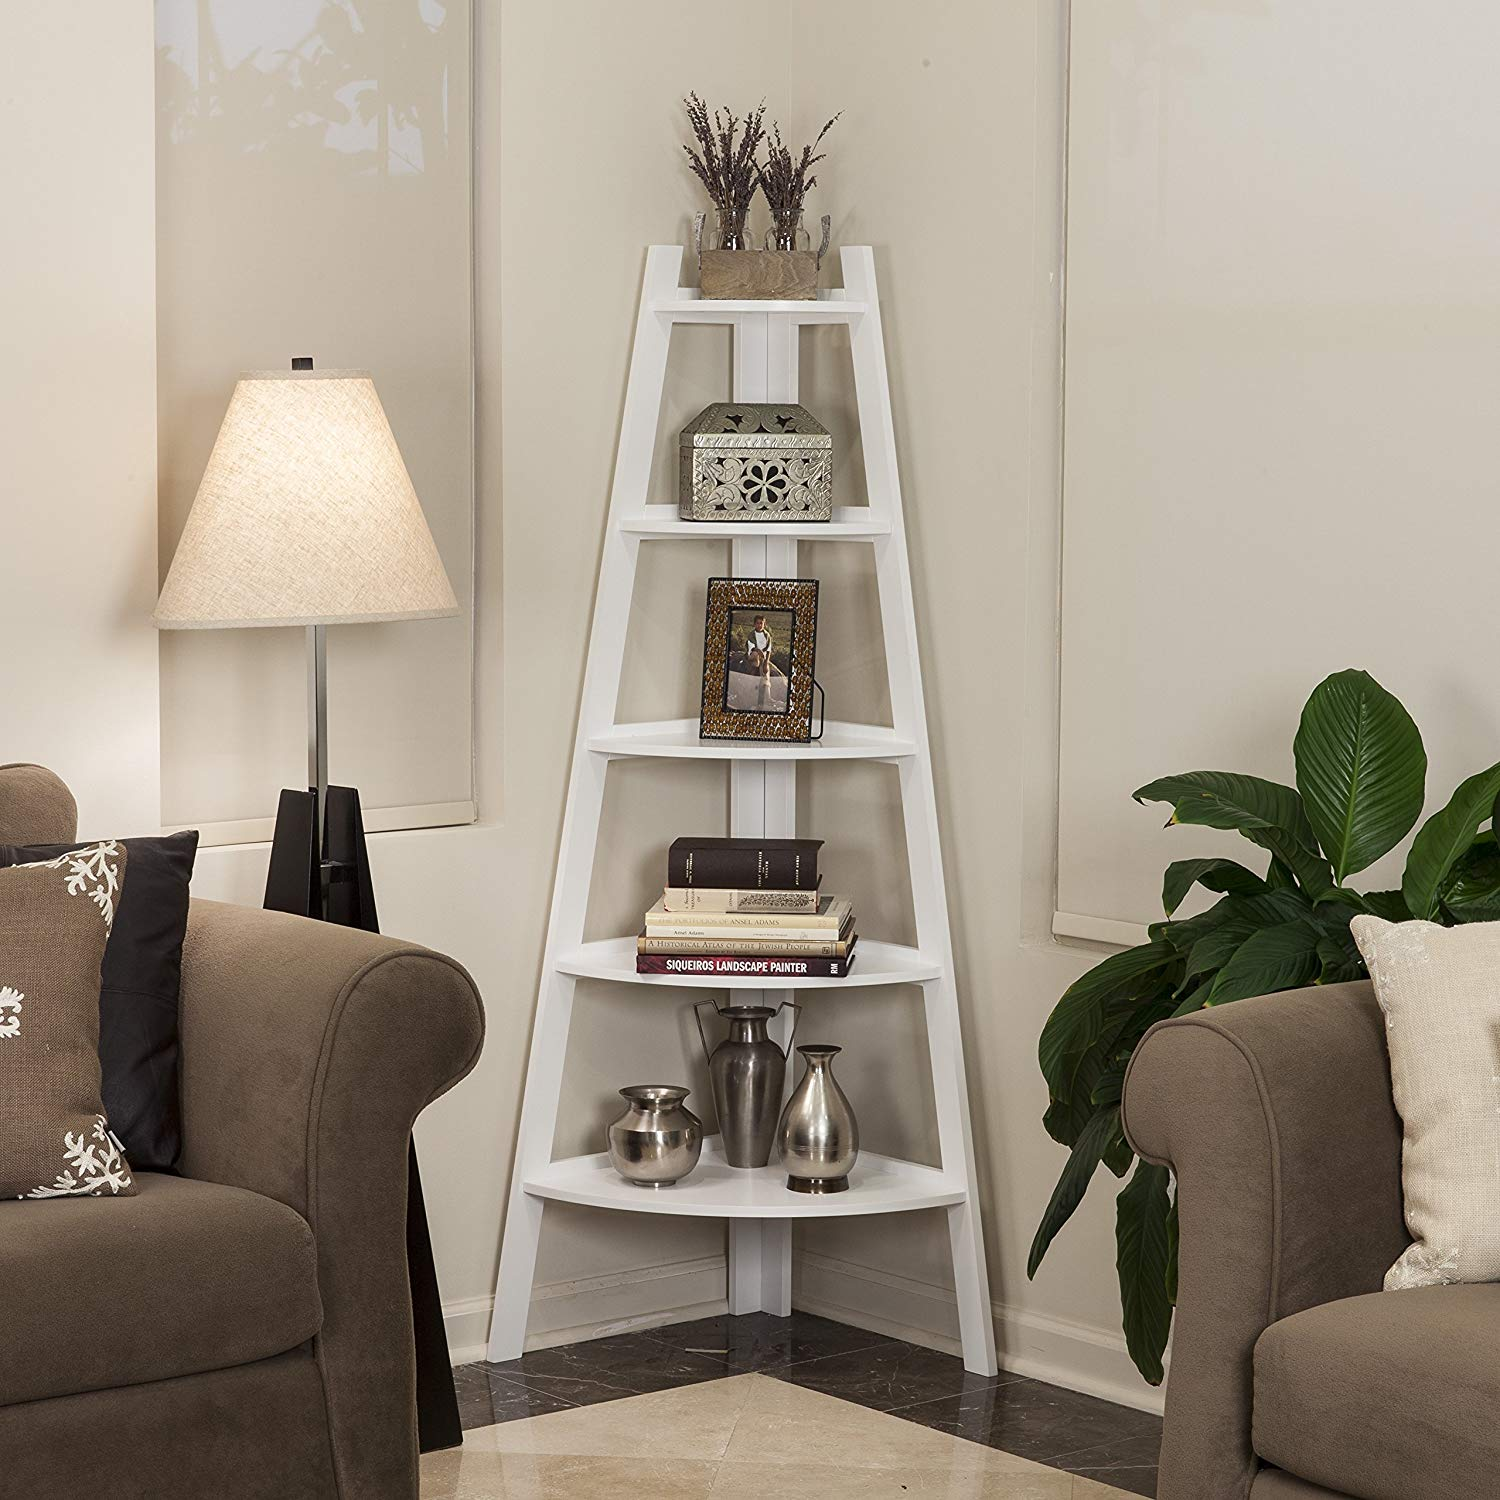 5-tier Corner Ladder Display Bookshelf, 5 Shelves for Ample Space, Wood and MDF Construction, Contemporary Style, Hardware Included, Assembly Required, 63 x 26.5 x 17.5 Inches, Matte White Finish